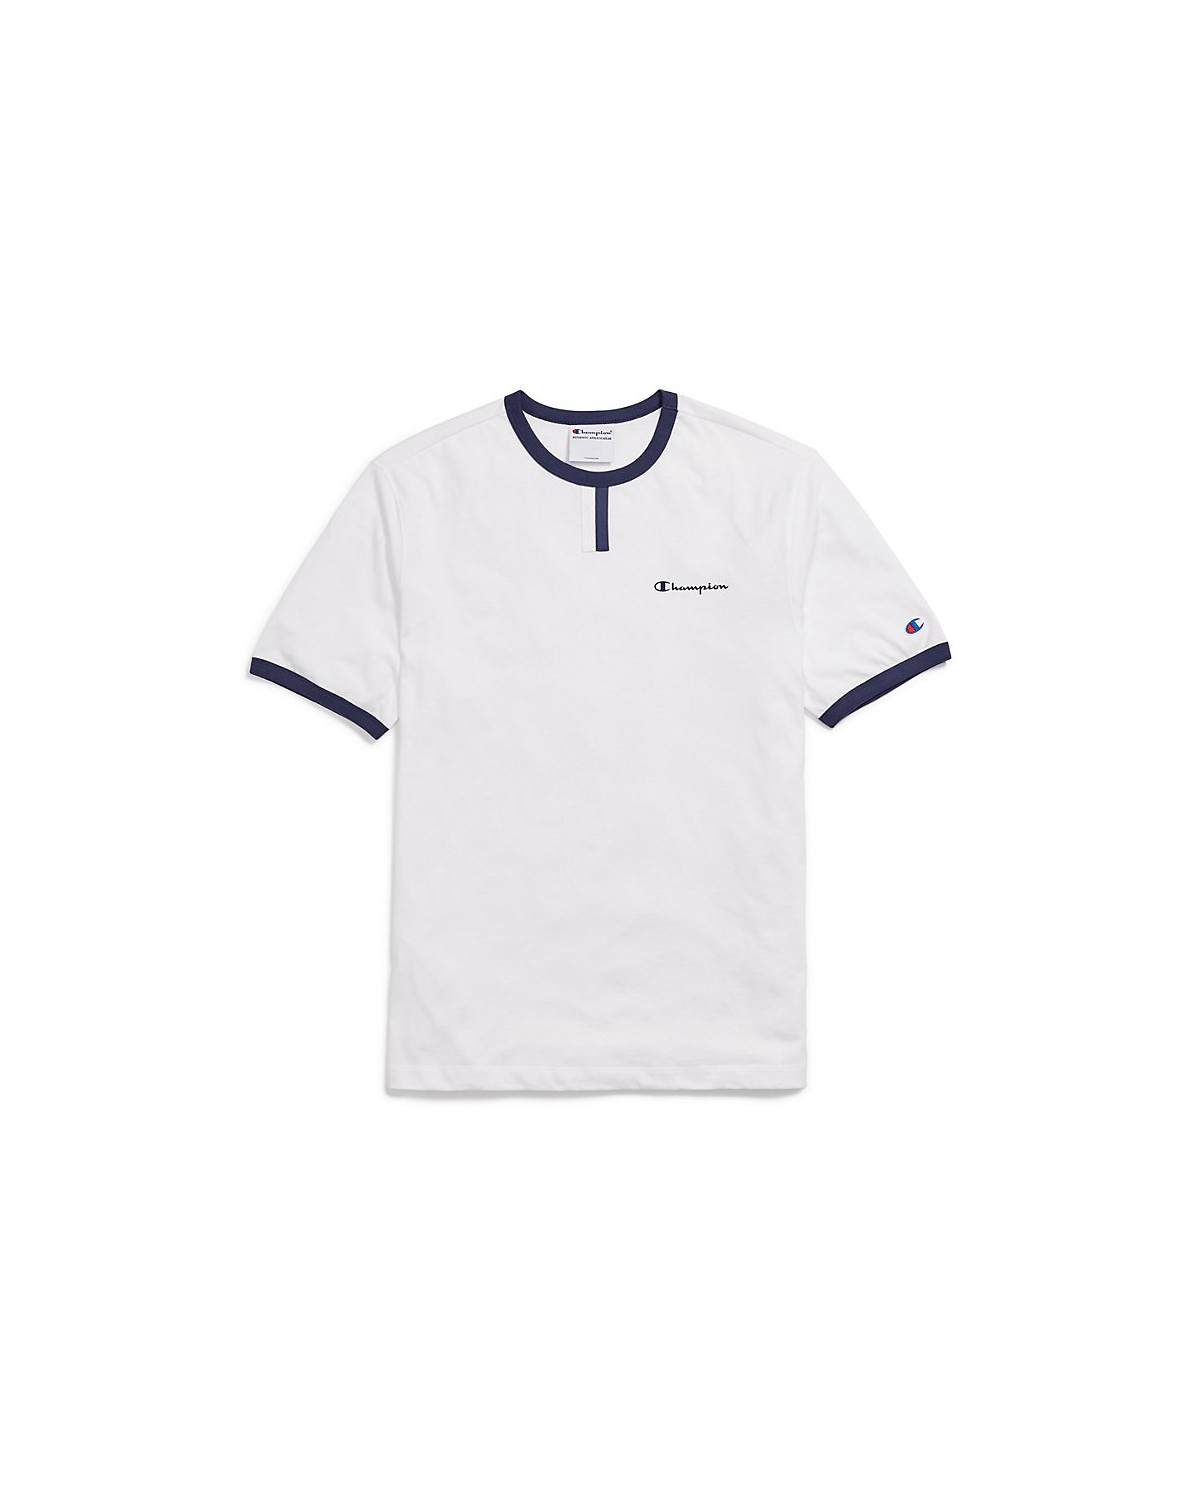 T5050 550031 Champion White/Imperial Indigo